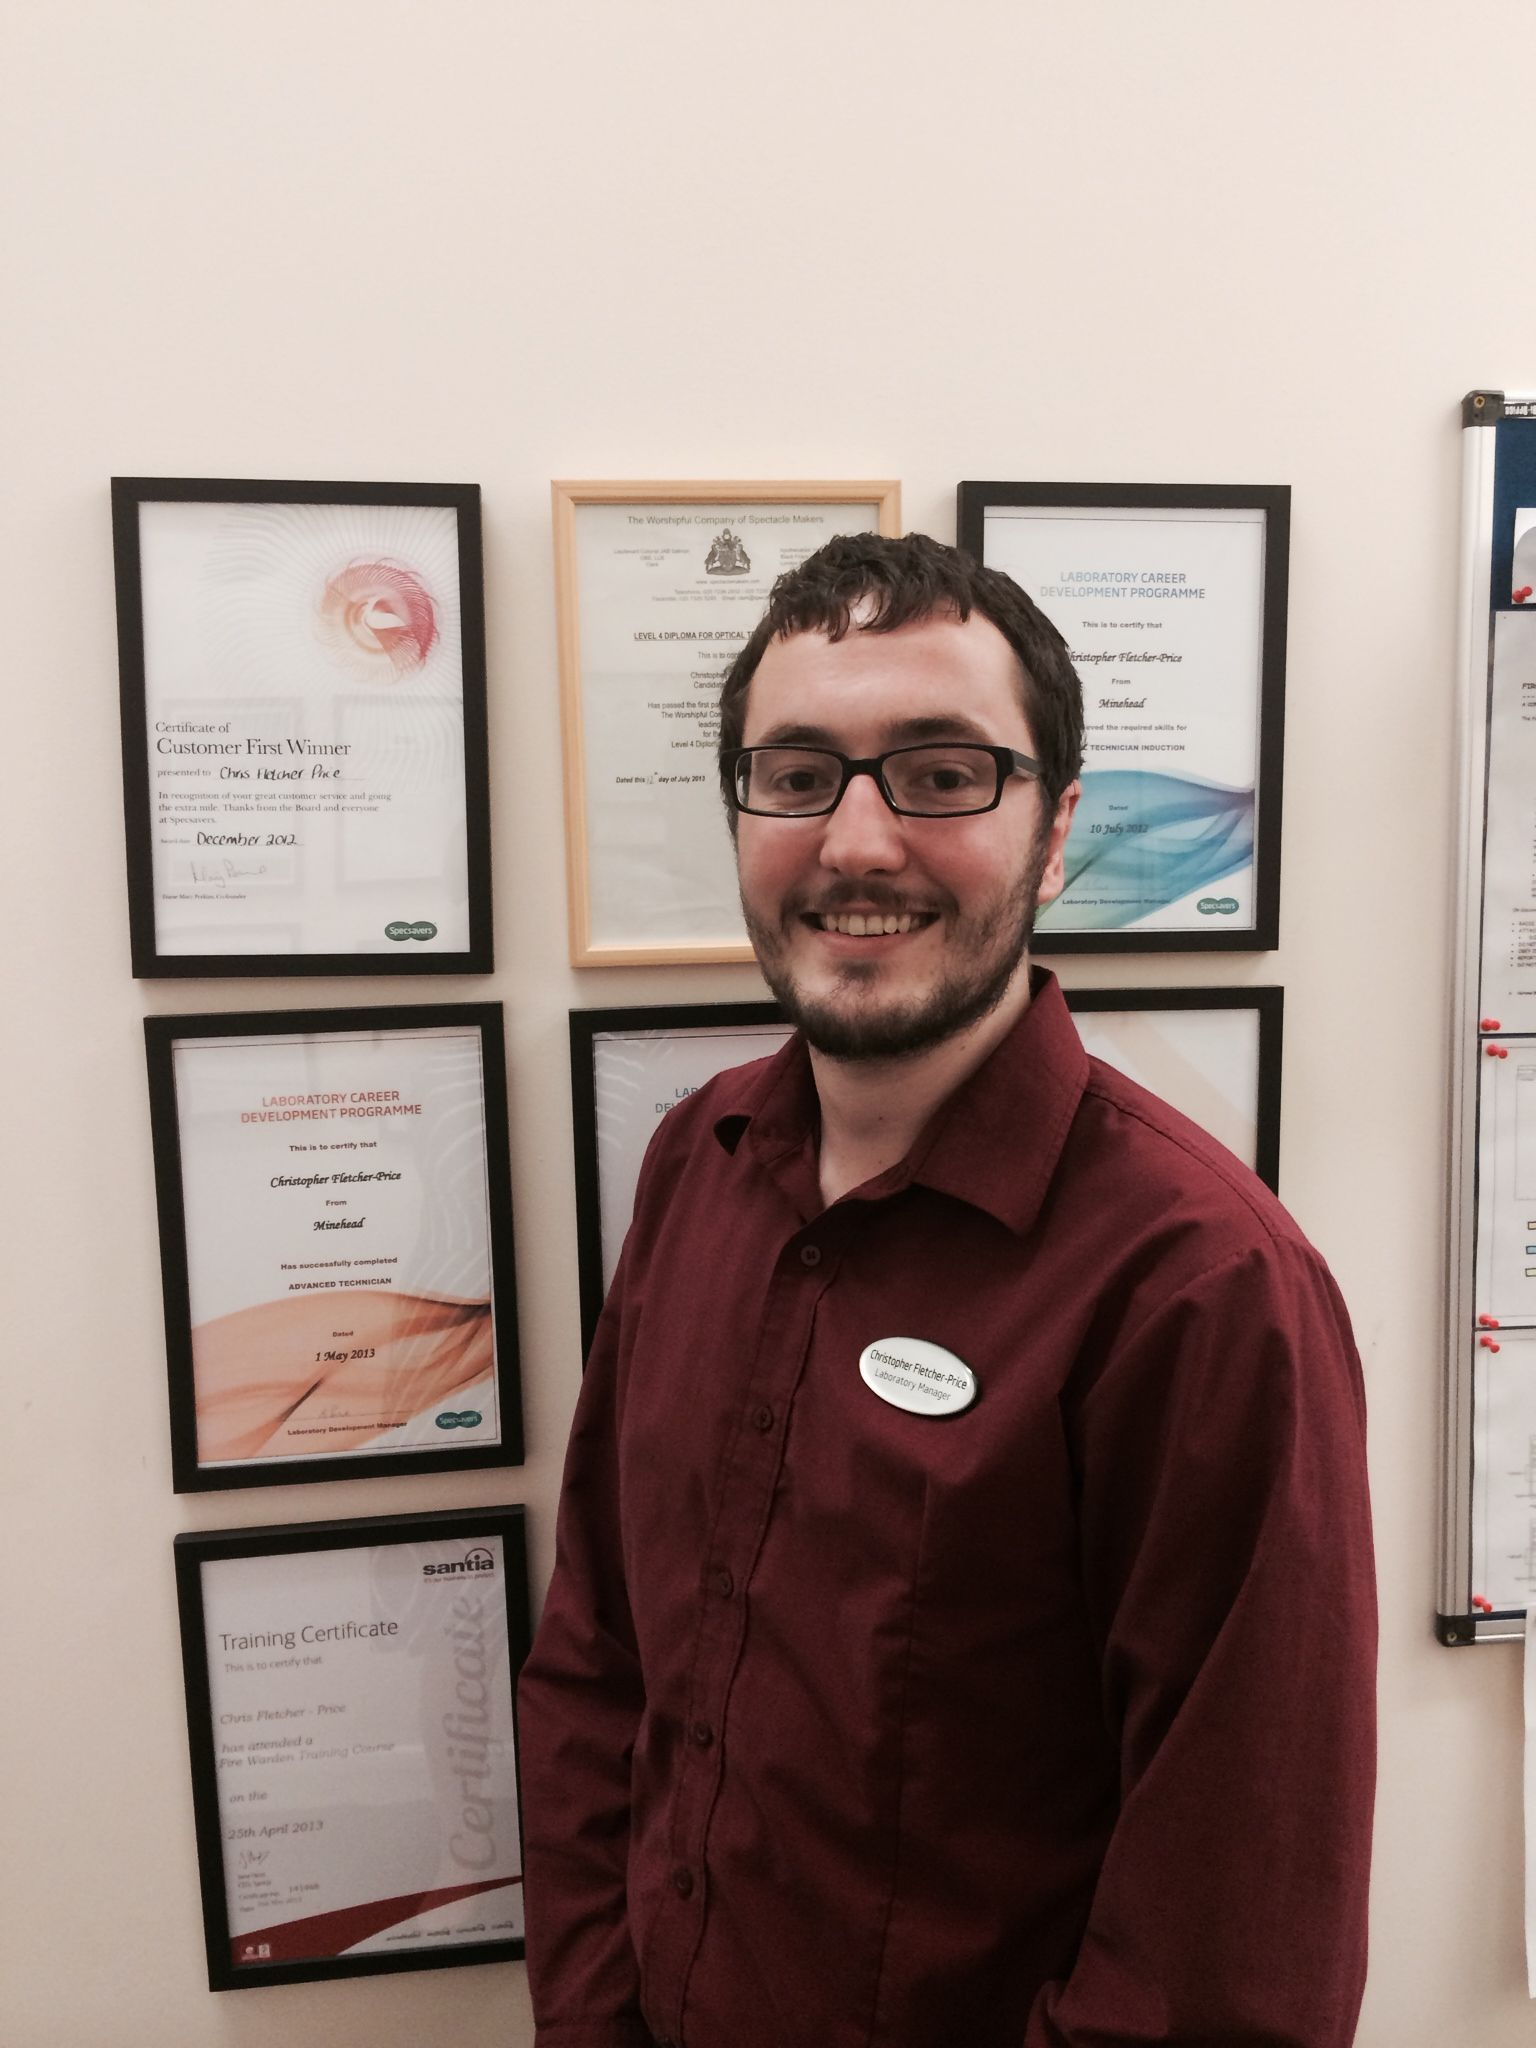 Christopher Fletcher-Price, Lab Manager at Specsavers Minehead